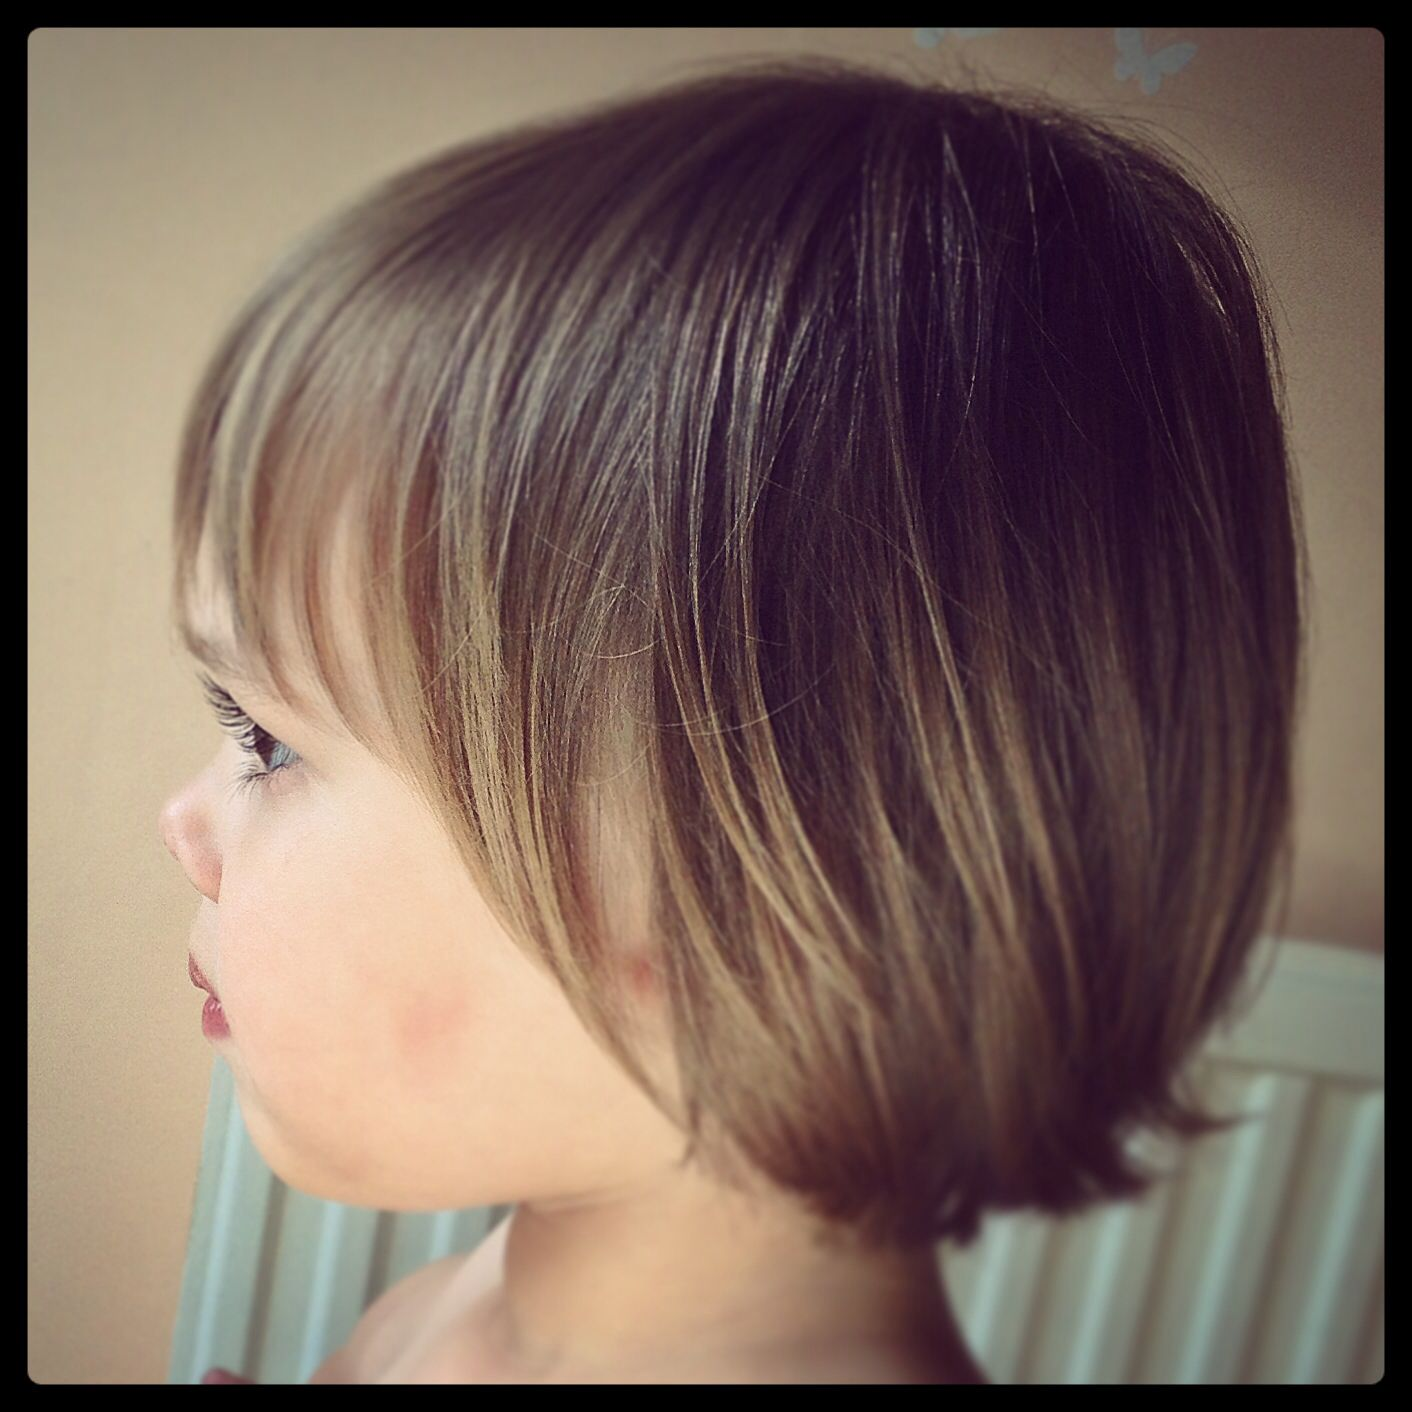 hair cutting styles for girls pictures best 25 toddler bob haircut ideas on 6680 | 4a61d8ad12854ed2a08e9982b7422789